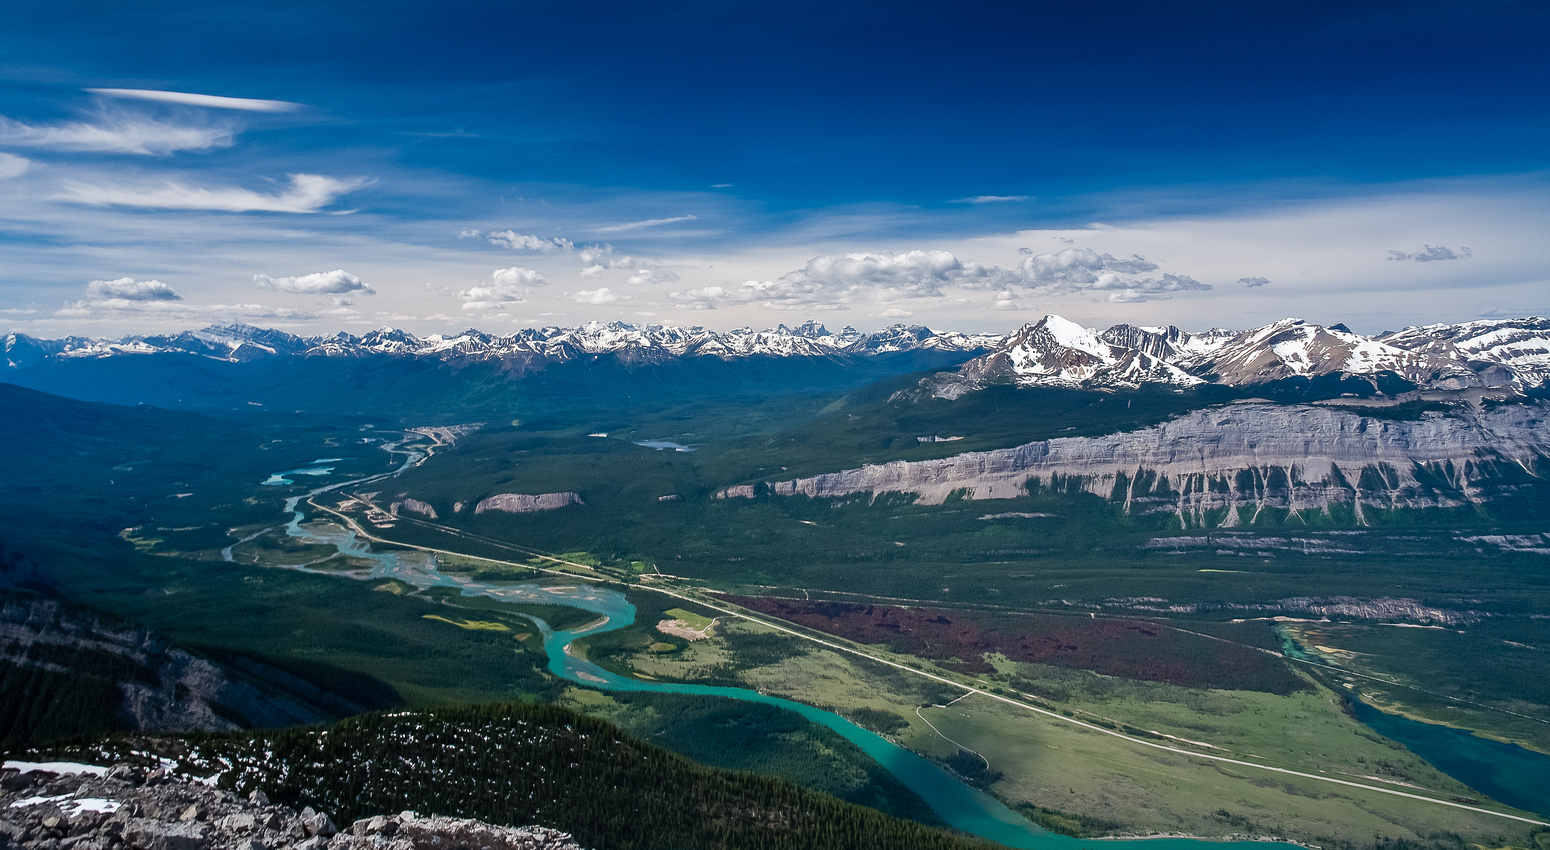 Views south up the Athabasca River.